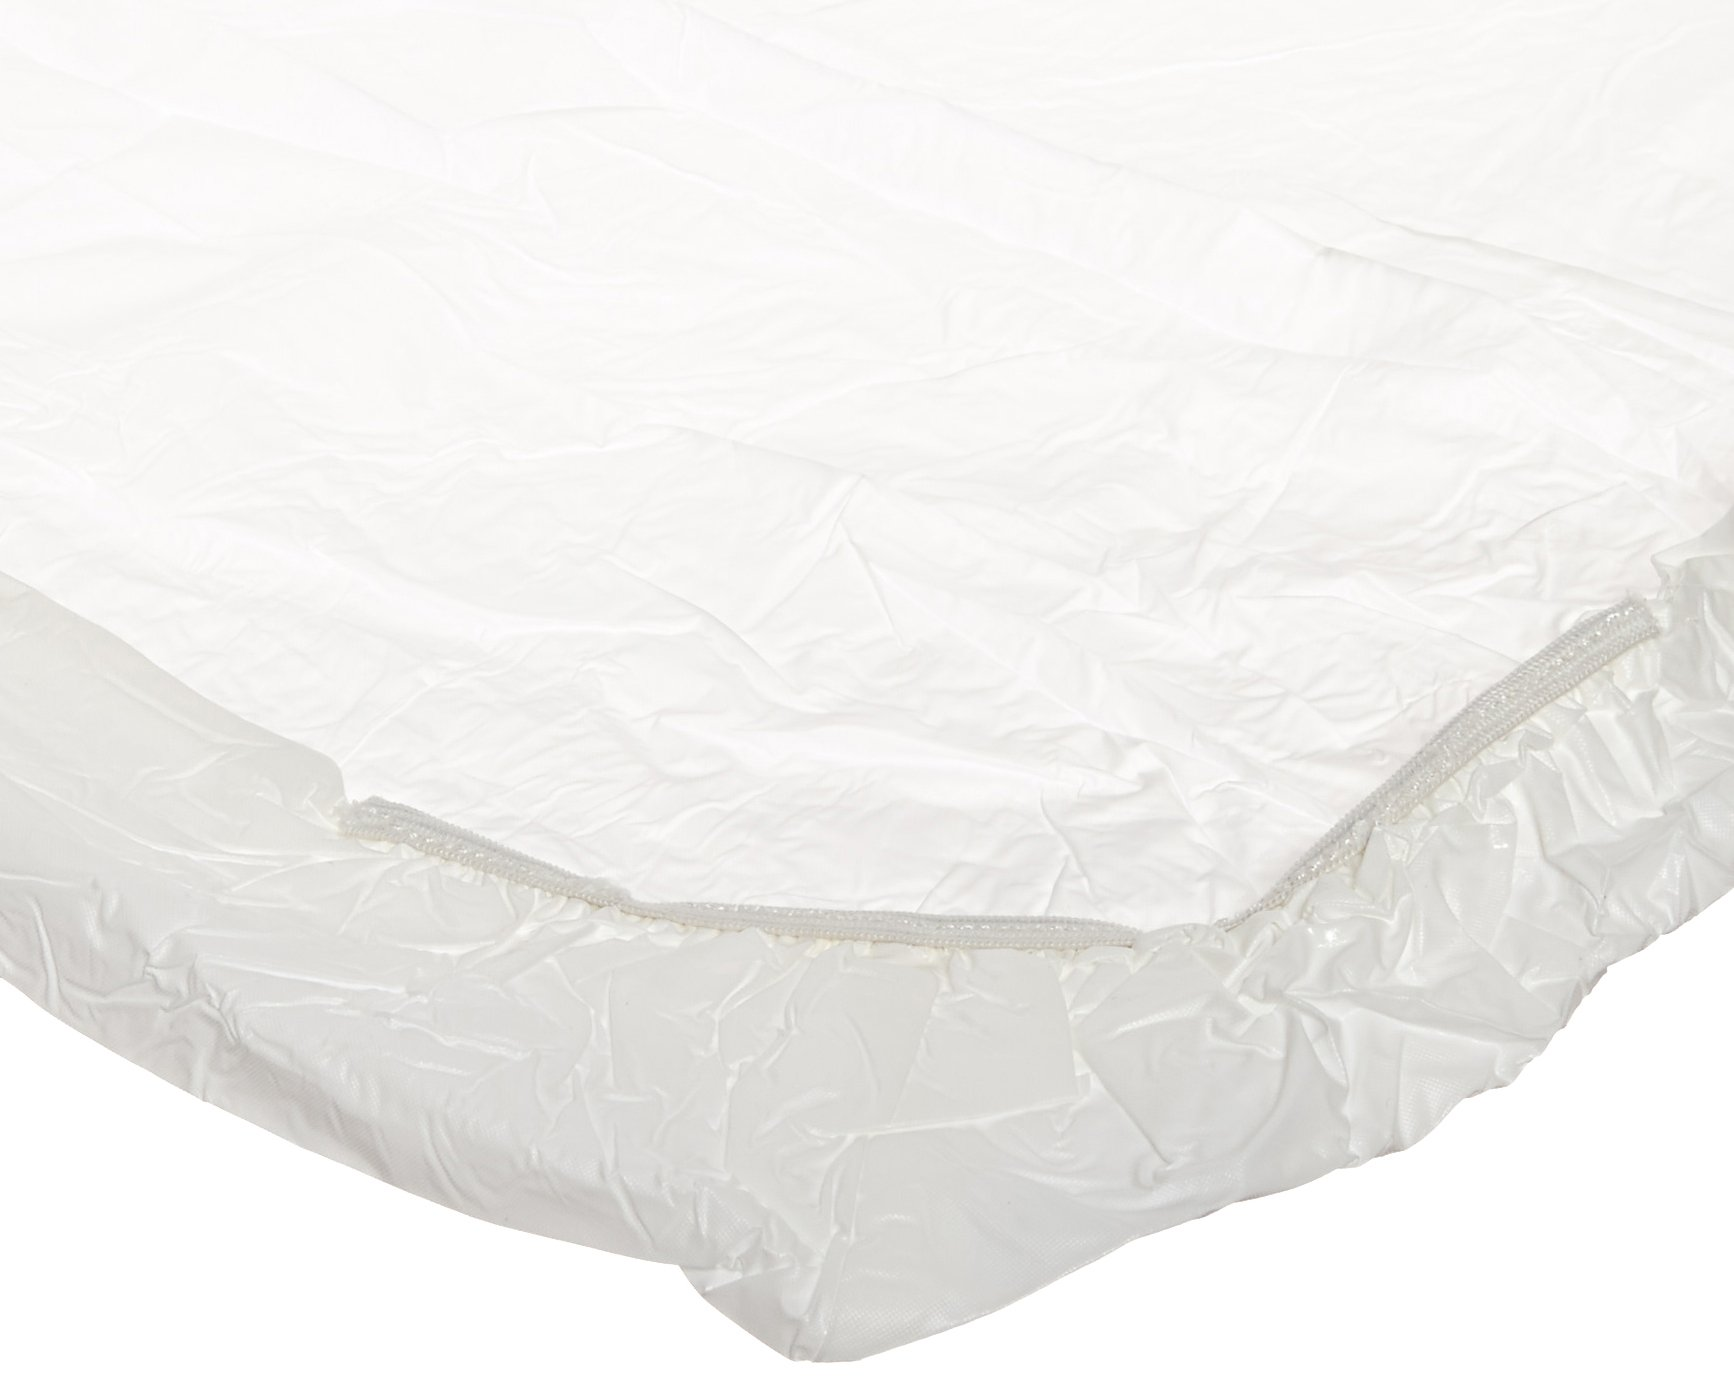 Kwik-Cover 3072PK-W 30'' X 72'' Kwik-Cover - White Fitted Table Cover (1 full case of 50)